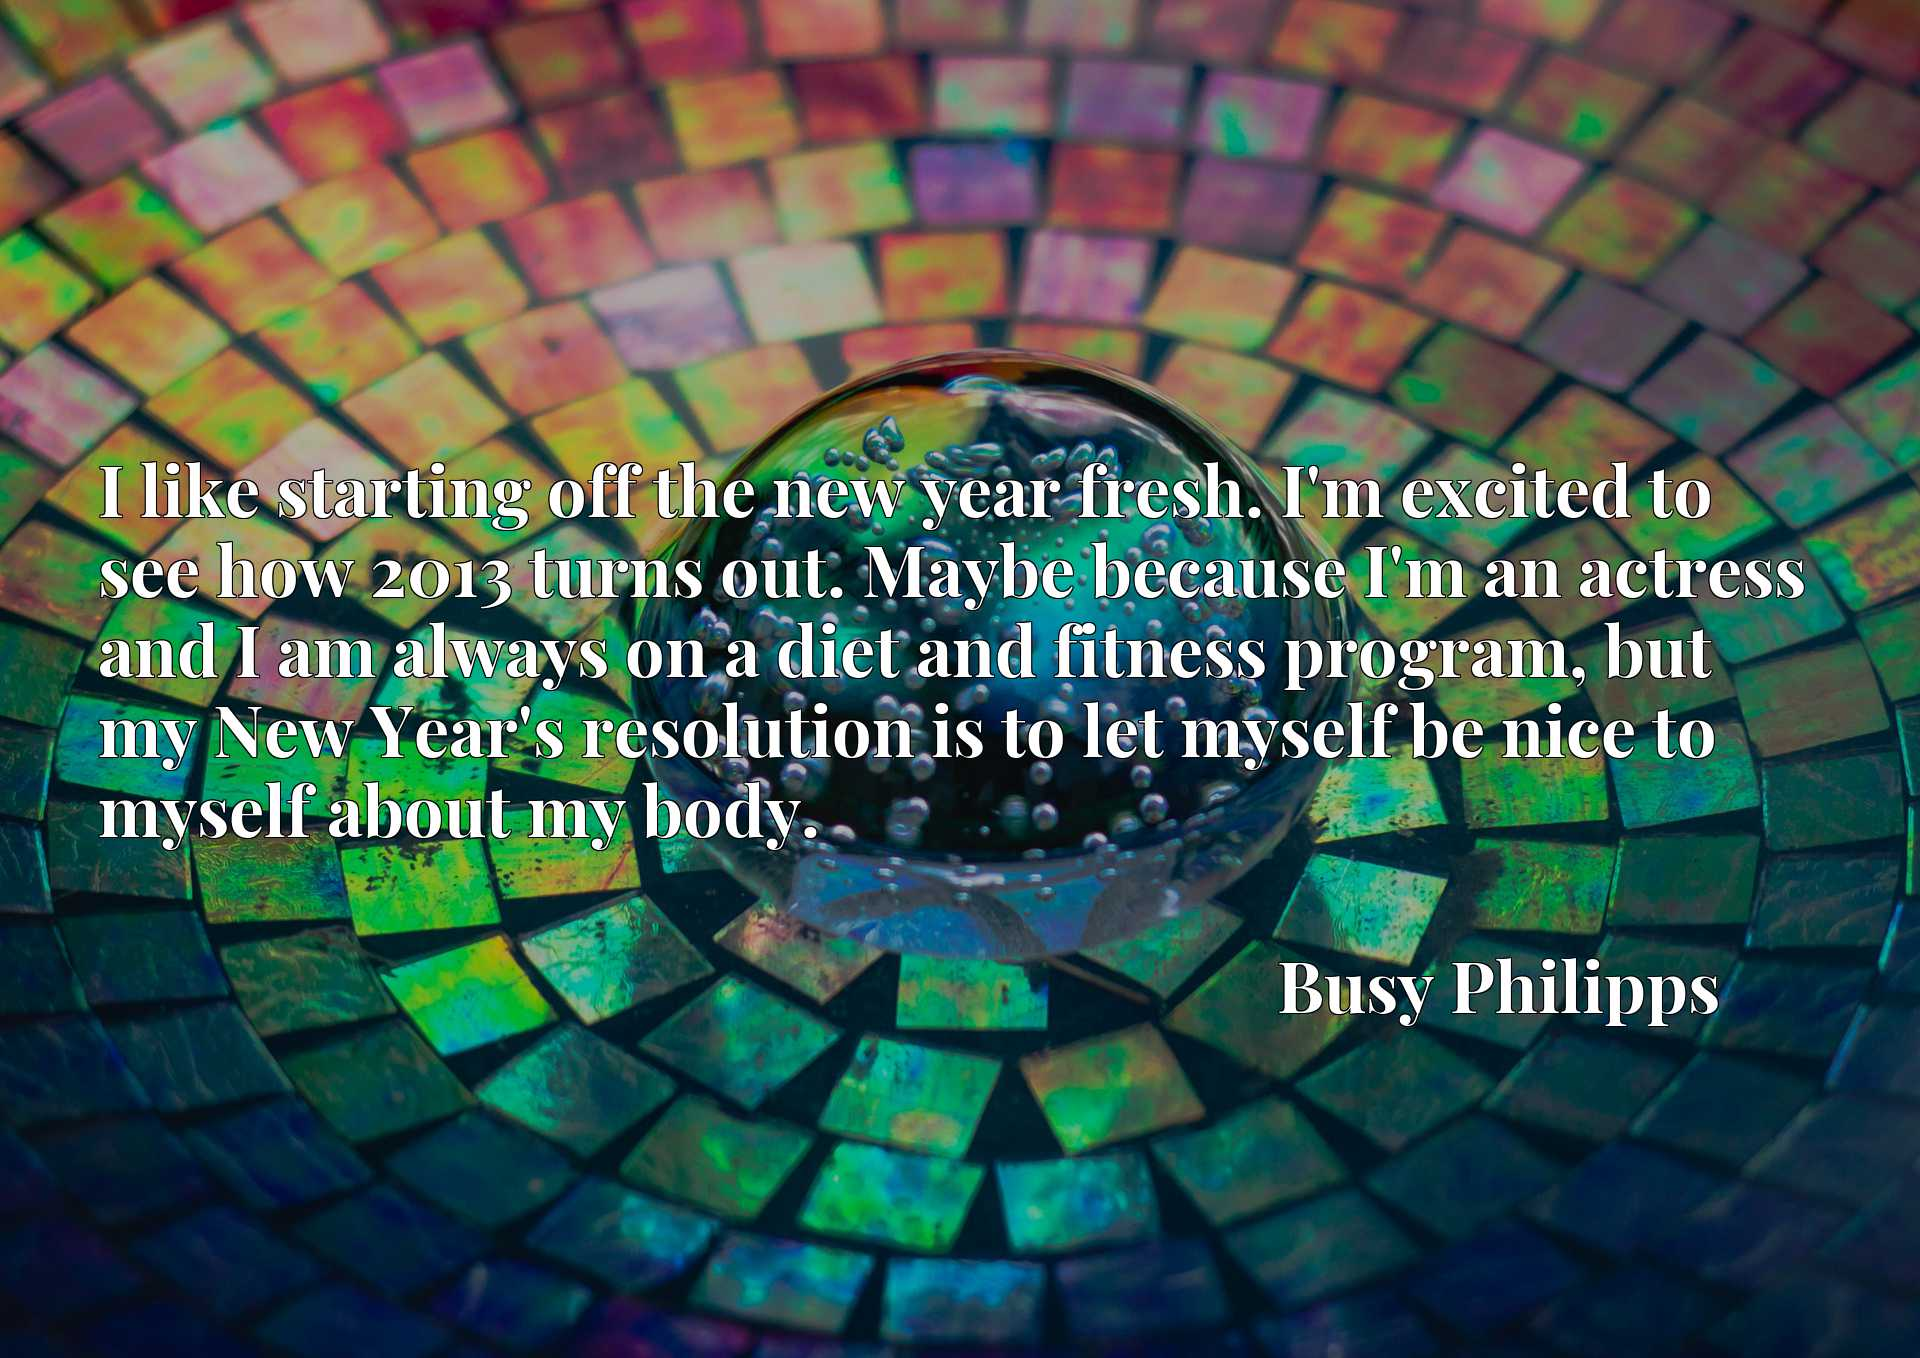 I like starting off the new year fresh. I'm excited to see how 2013 turns out. Maybe because I'm an actress and I am always on a diet and fitness program, but my New Year's resolution is to let myself be nice to myself about my body.